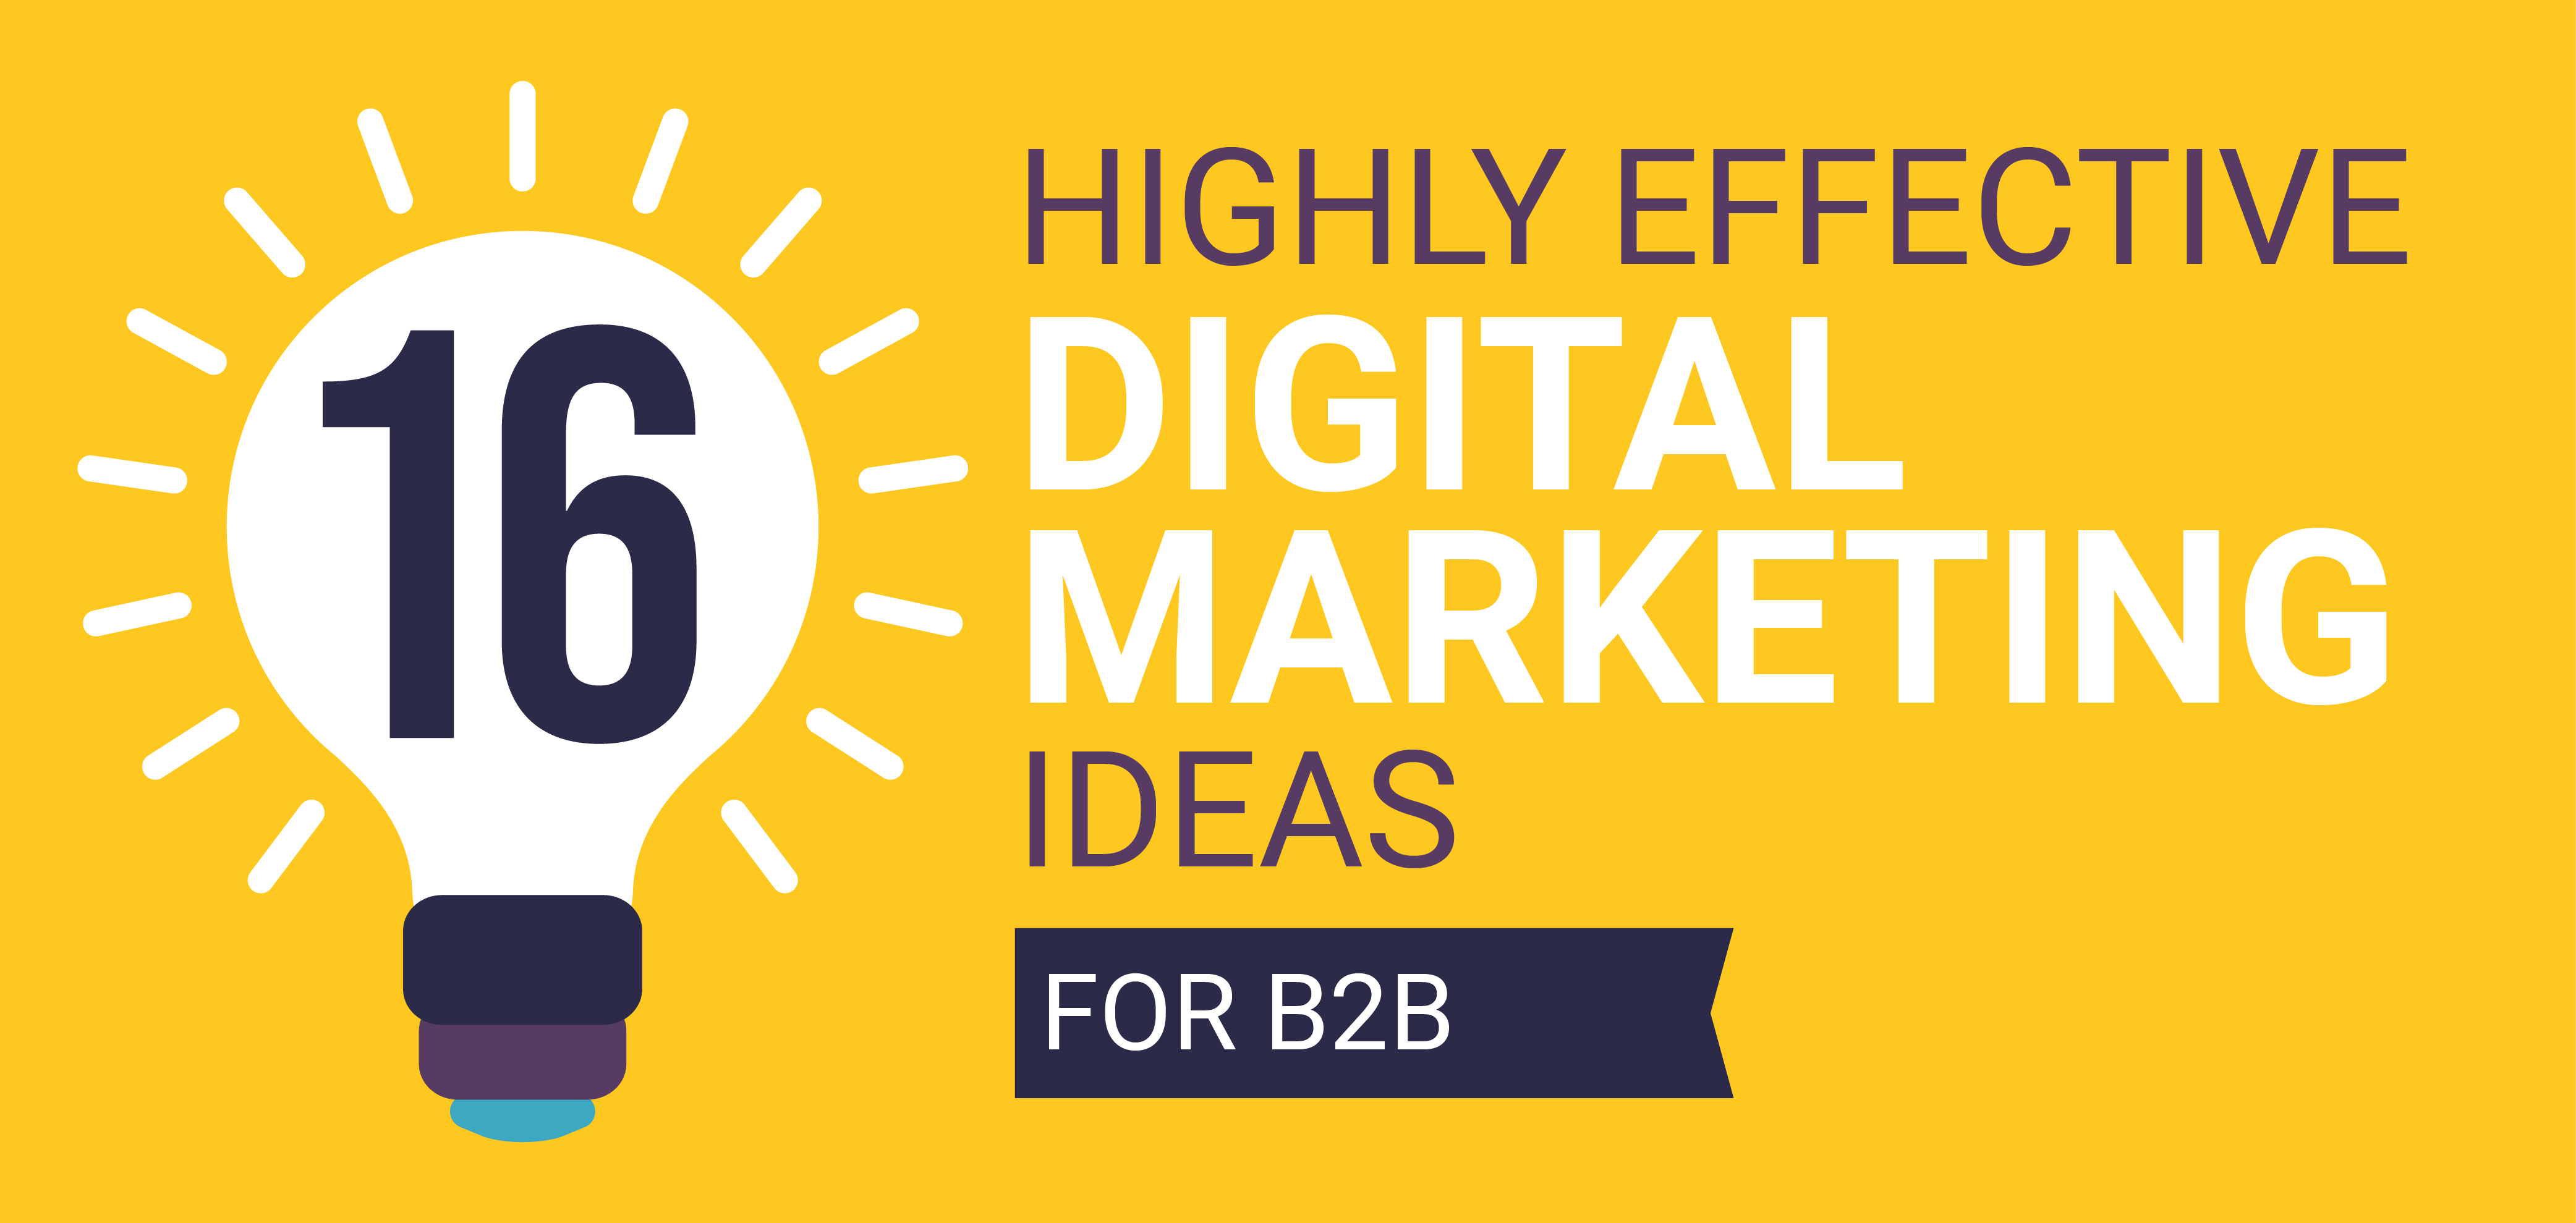 Highly effective digital marketing ideas for B2B